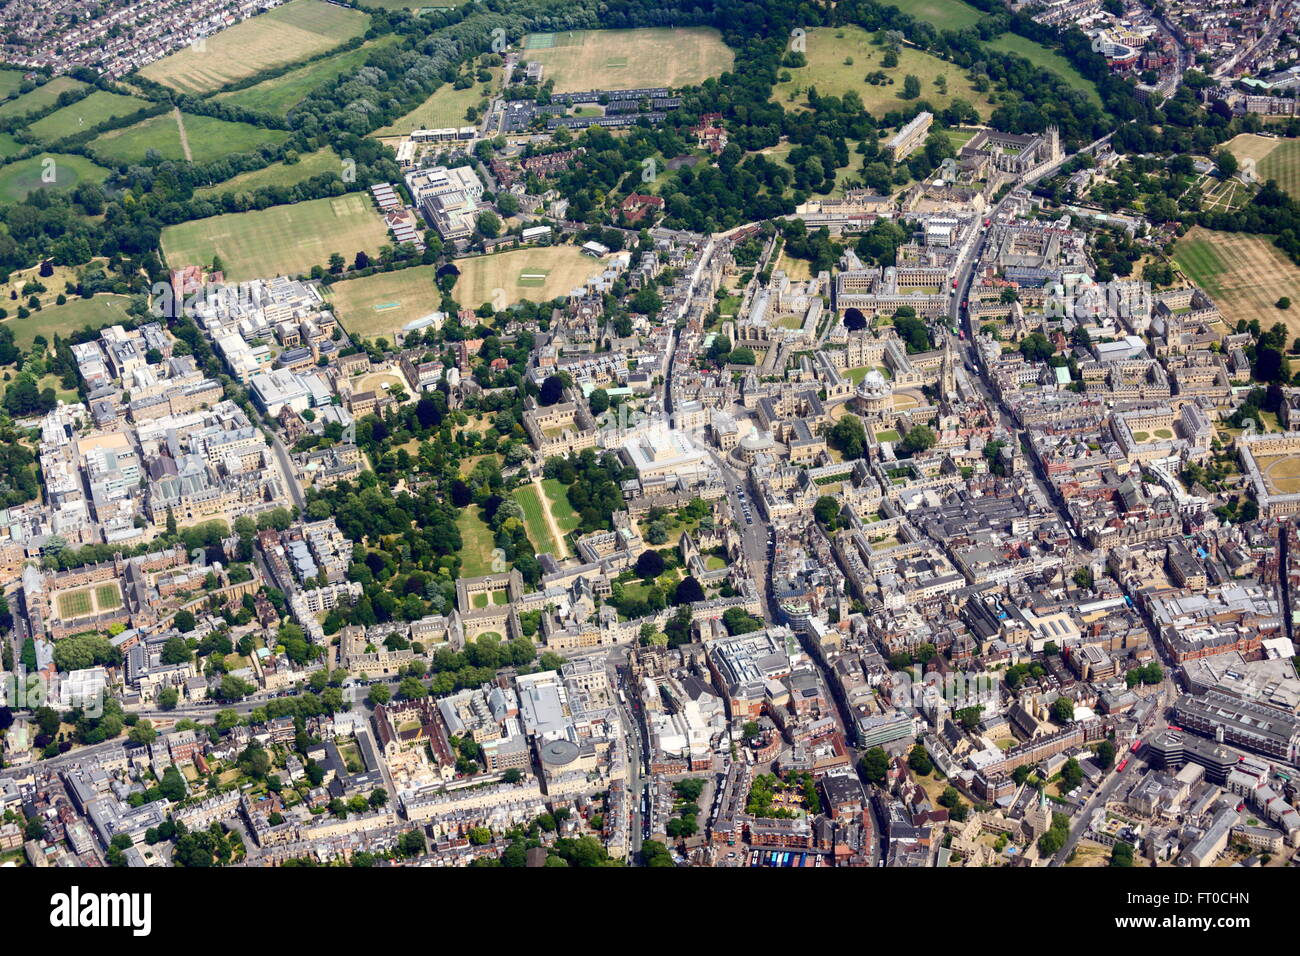 Aerial view of Oxford - Stock Image